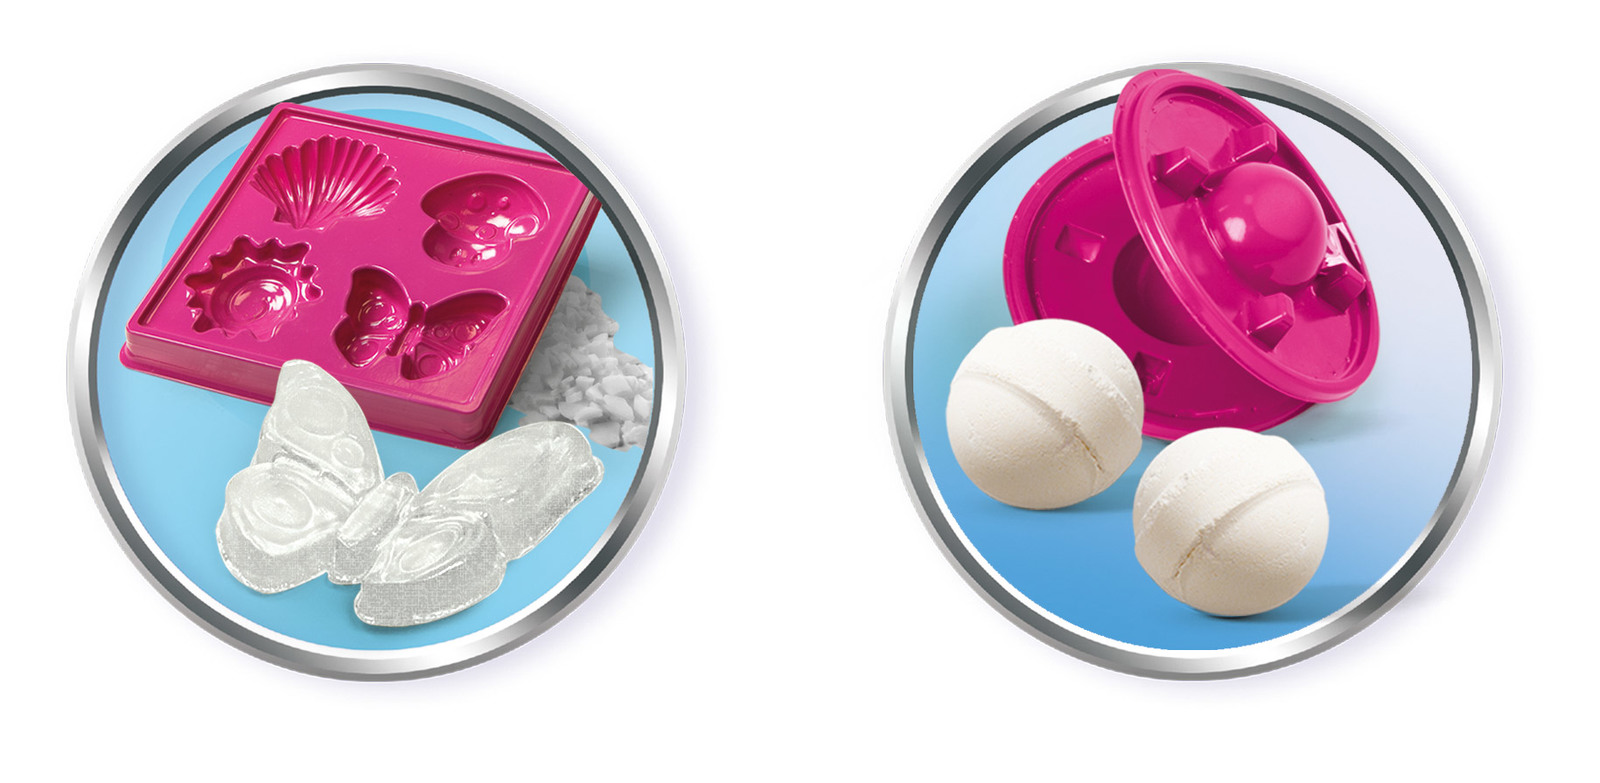 Clementoni: Science & Play - Soap and Bath Bombs image